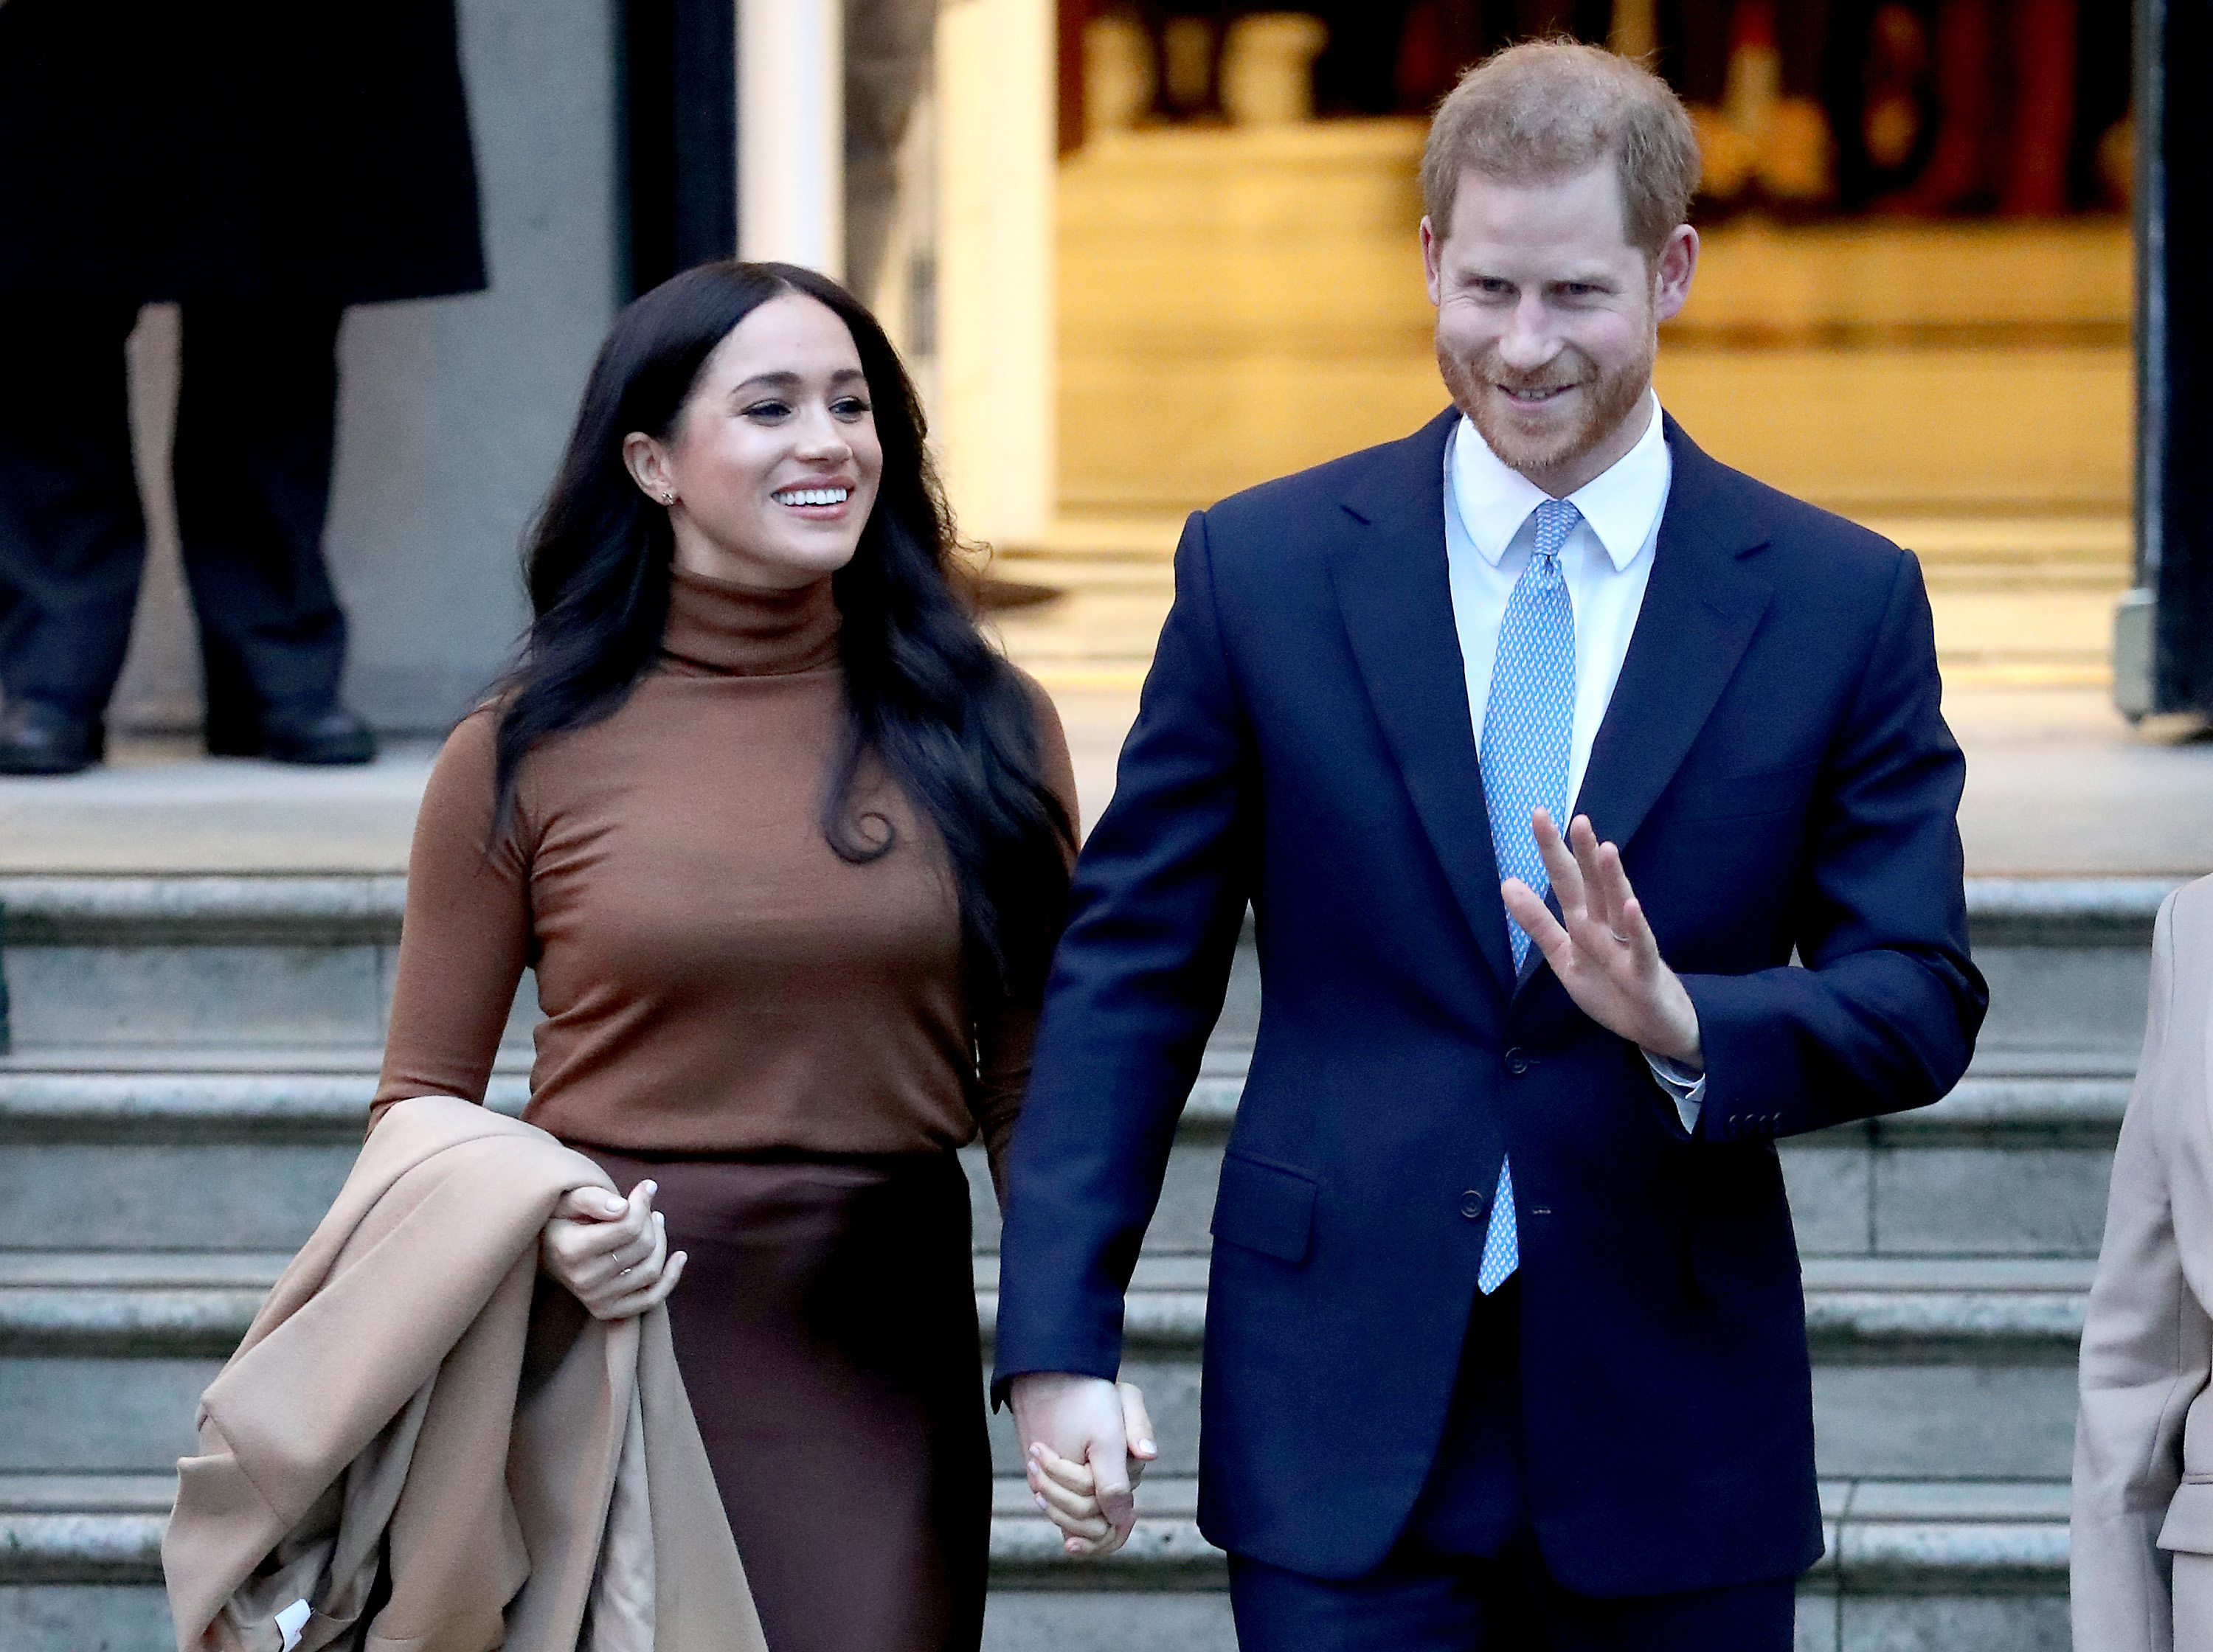 Prince Harry, Duke of Sussex and Meghan, Duchess of Sussex depart Canada House on January 07, 2020 in London, England. (Chris Jackson/Getty Images)